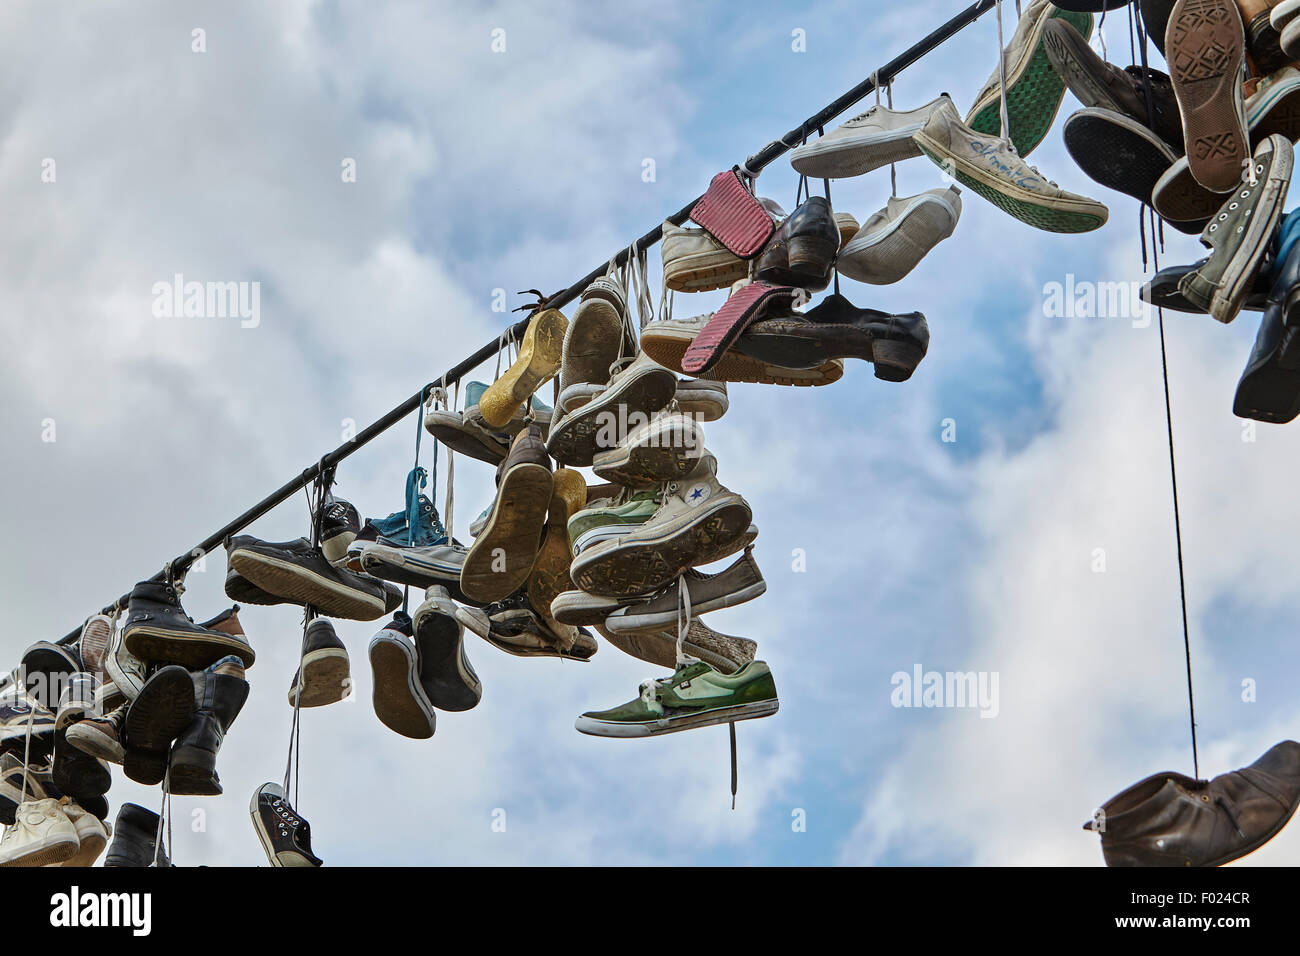 Shoes hanging from a wire, Letna Park, Prague, Czech Republic - Stock Image